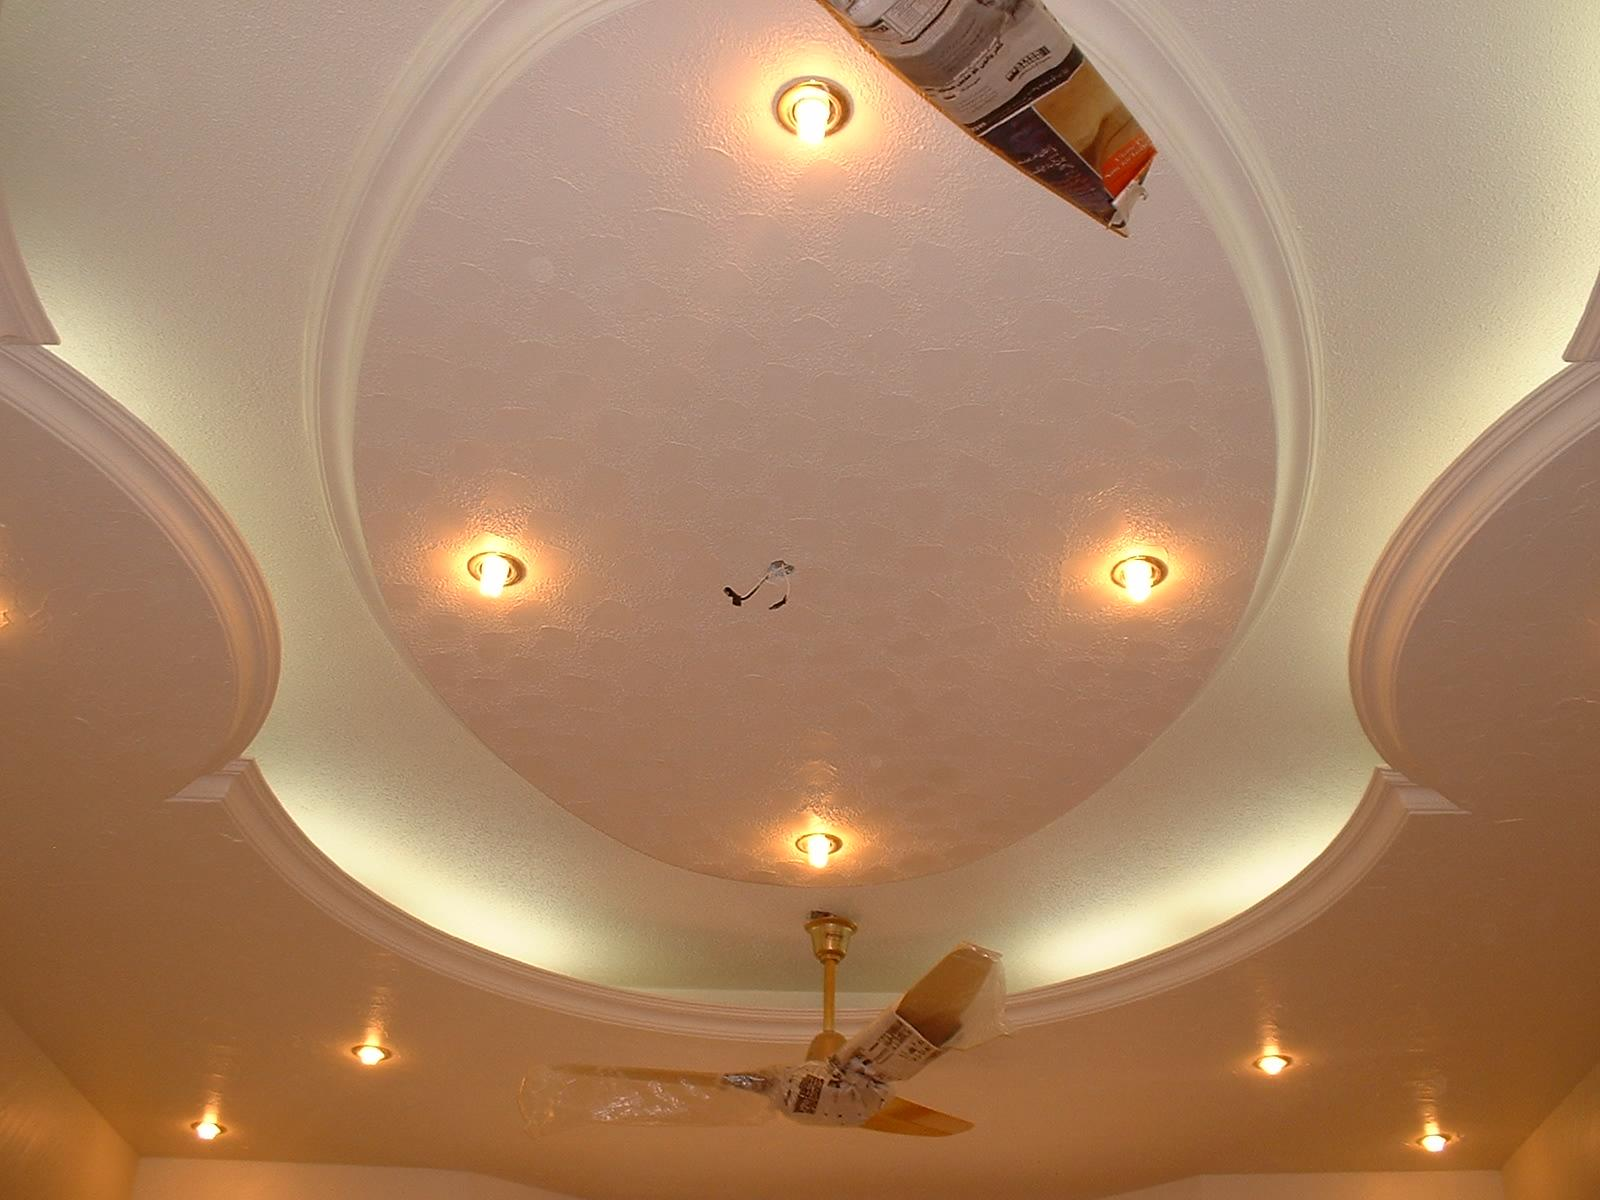 POP Ceiling With Fans And Lighting GharExpert